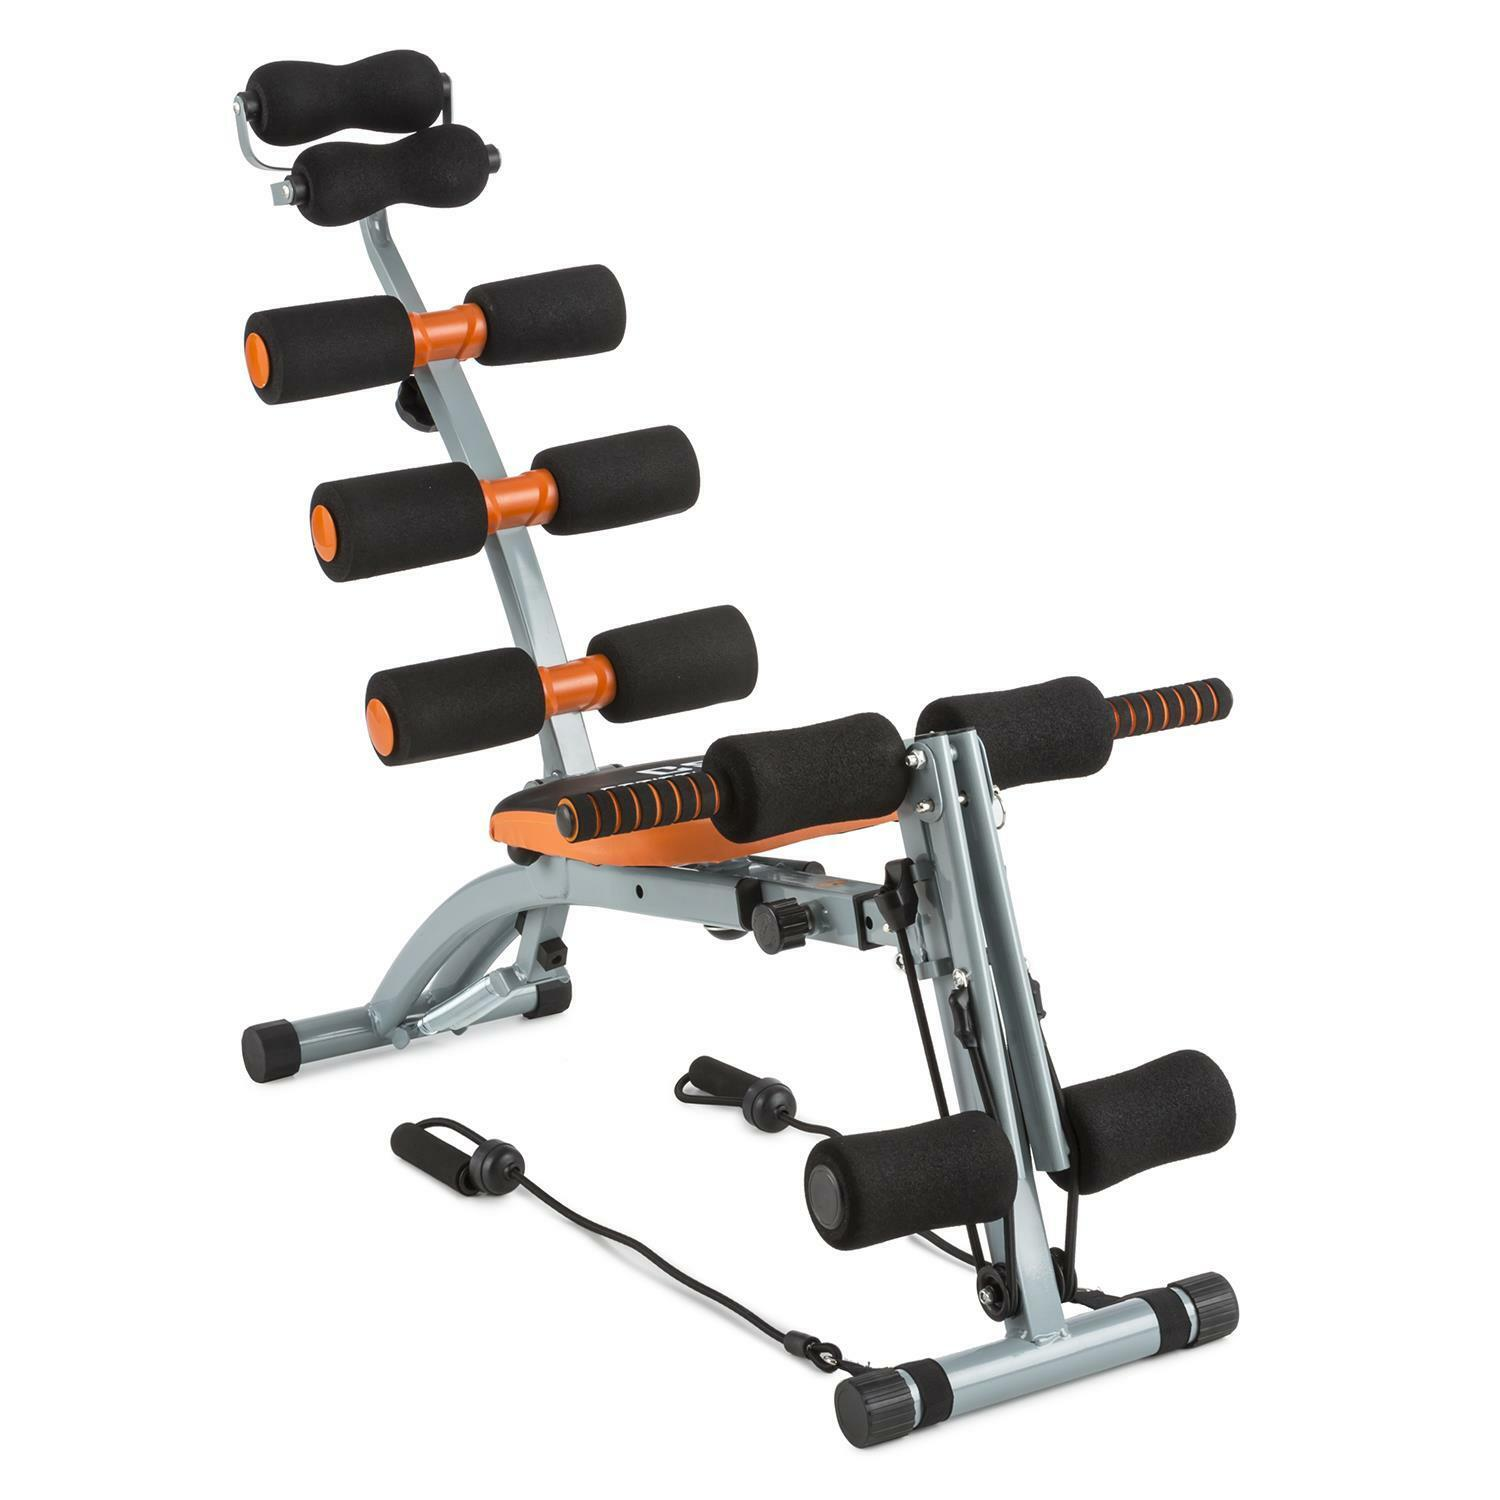 B-WARE CAPITAL SPORTS Bauchtrainer Core Body Trainer Home Gym Fitness